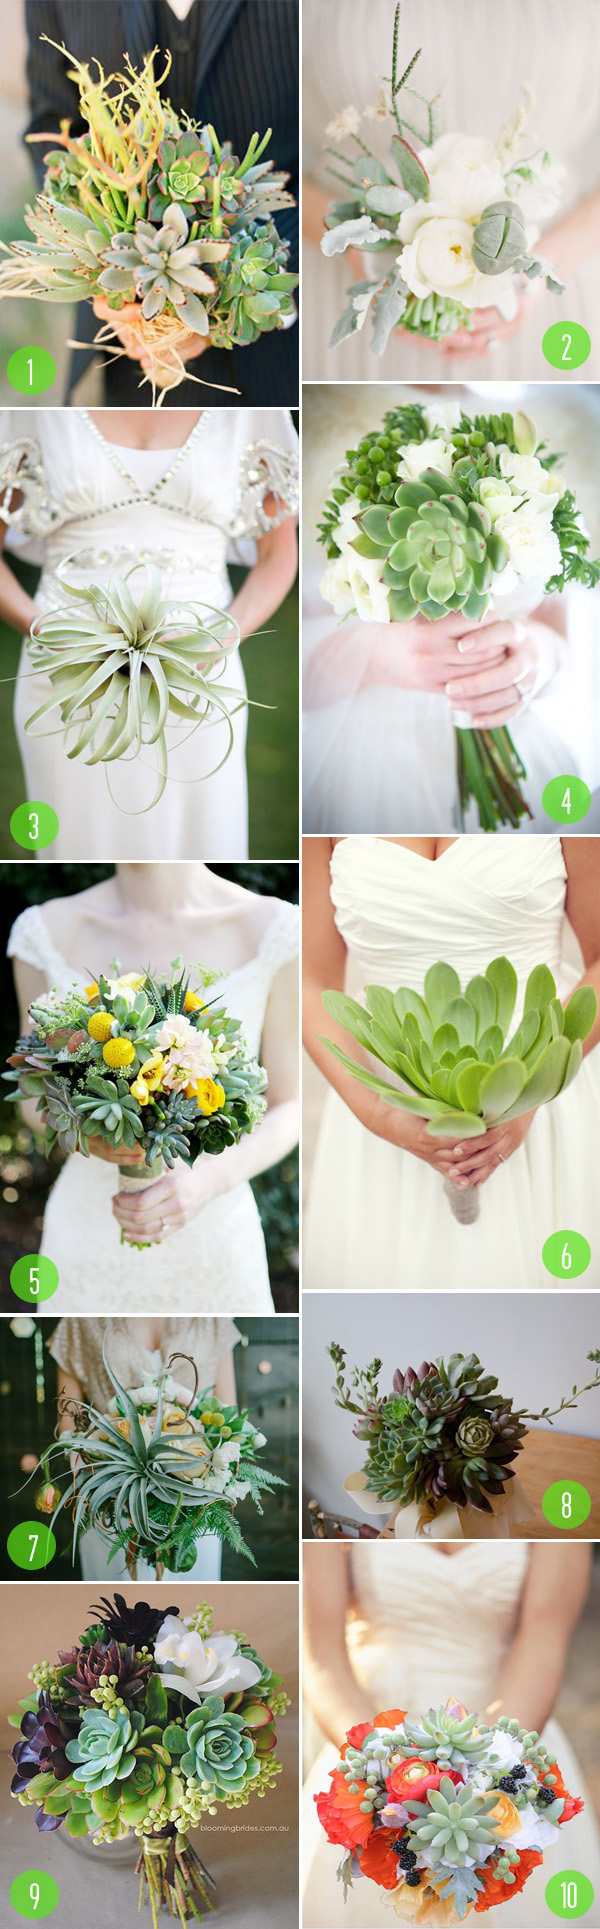 top 10: succulent bouquets